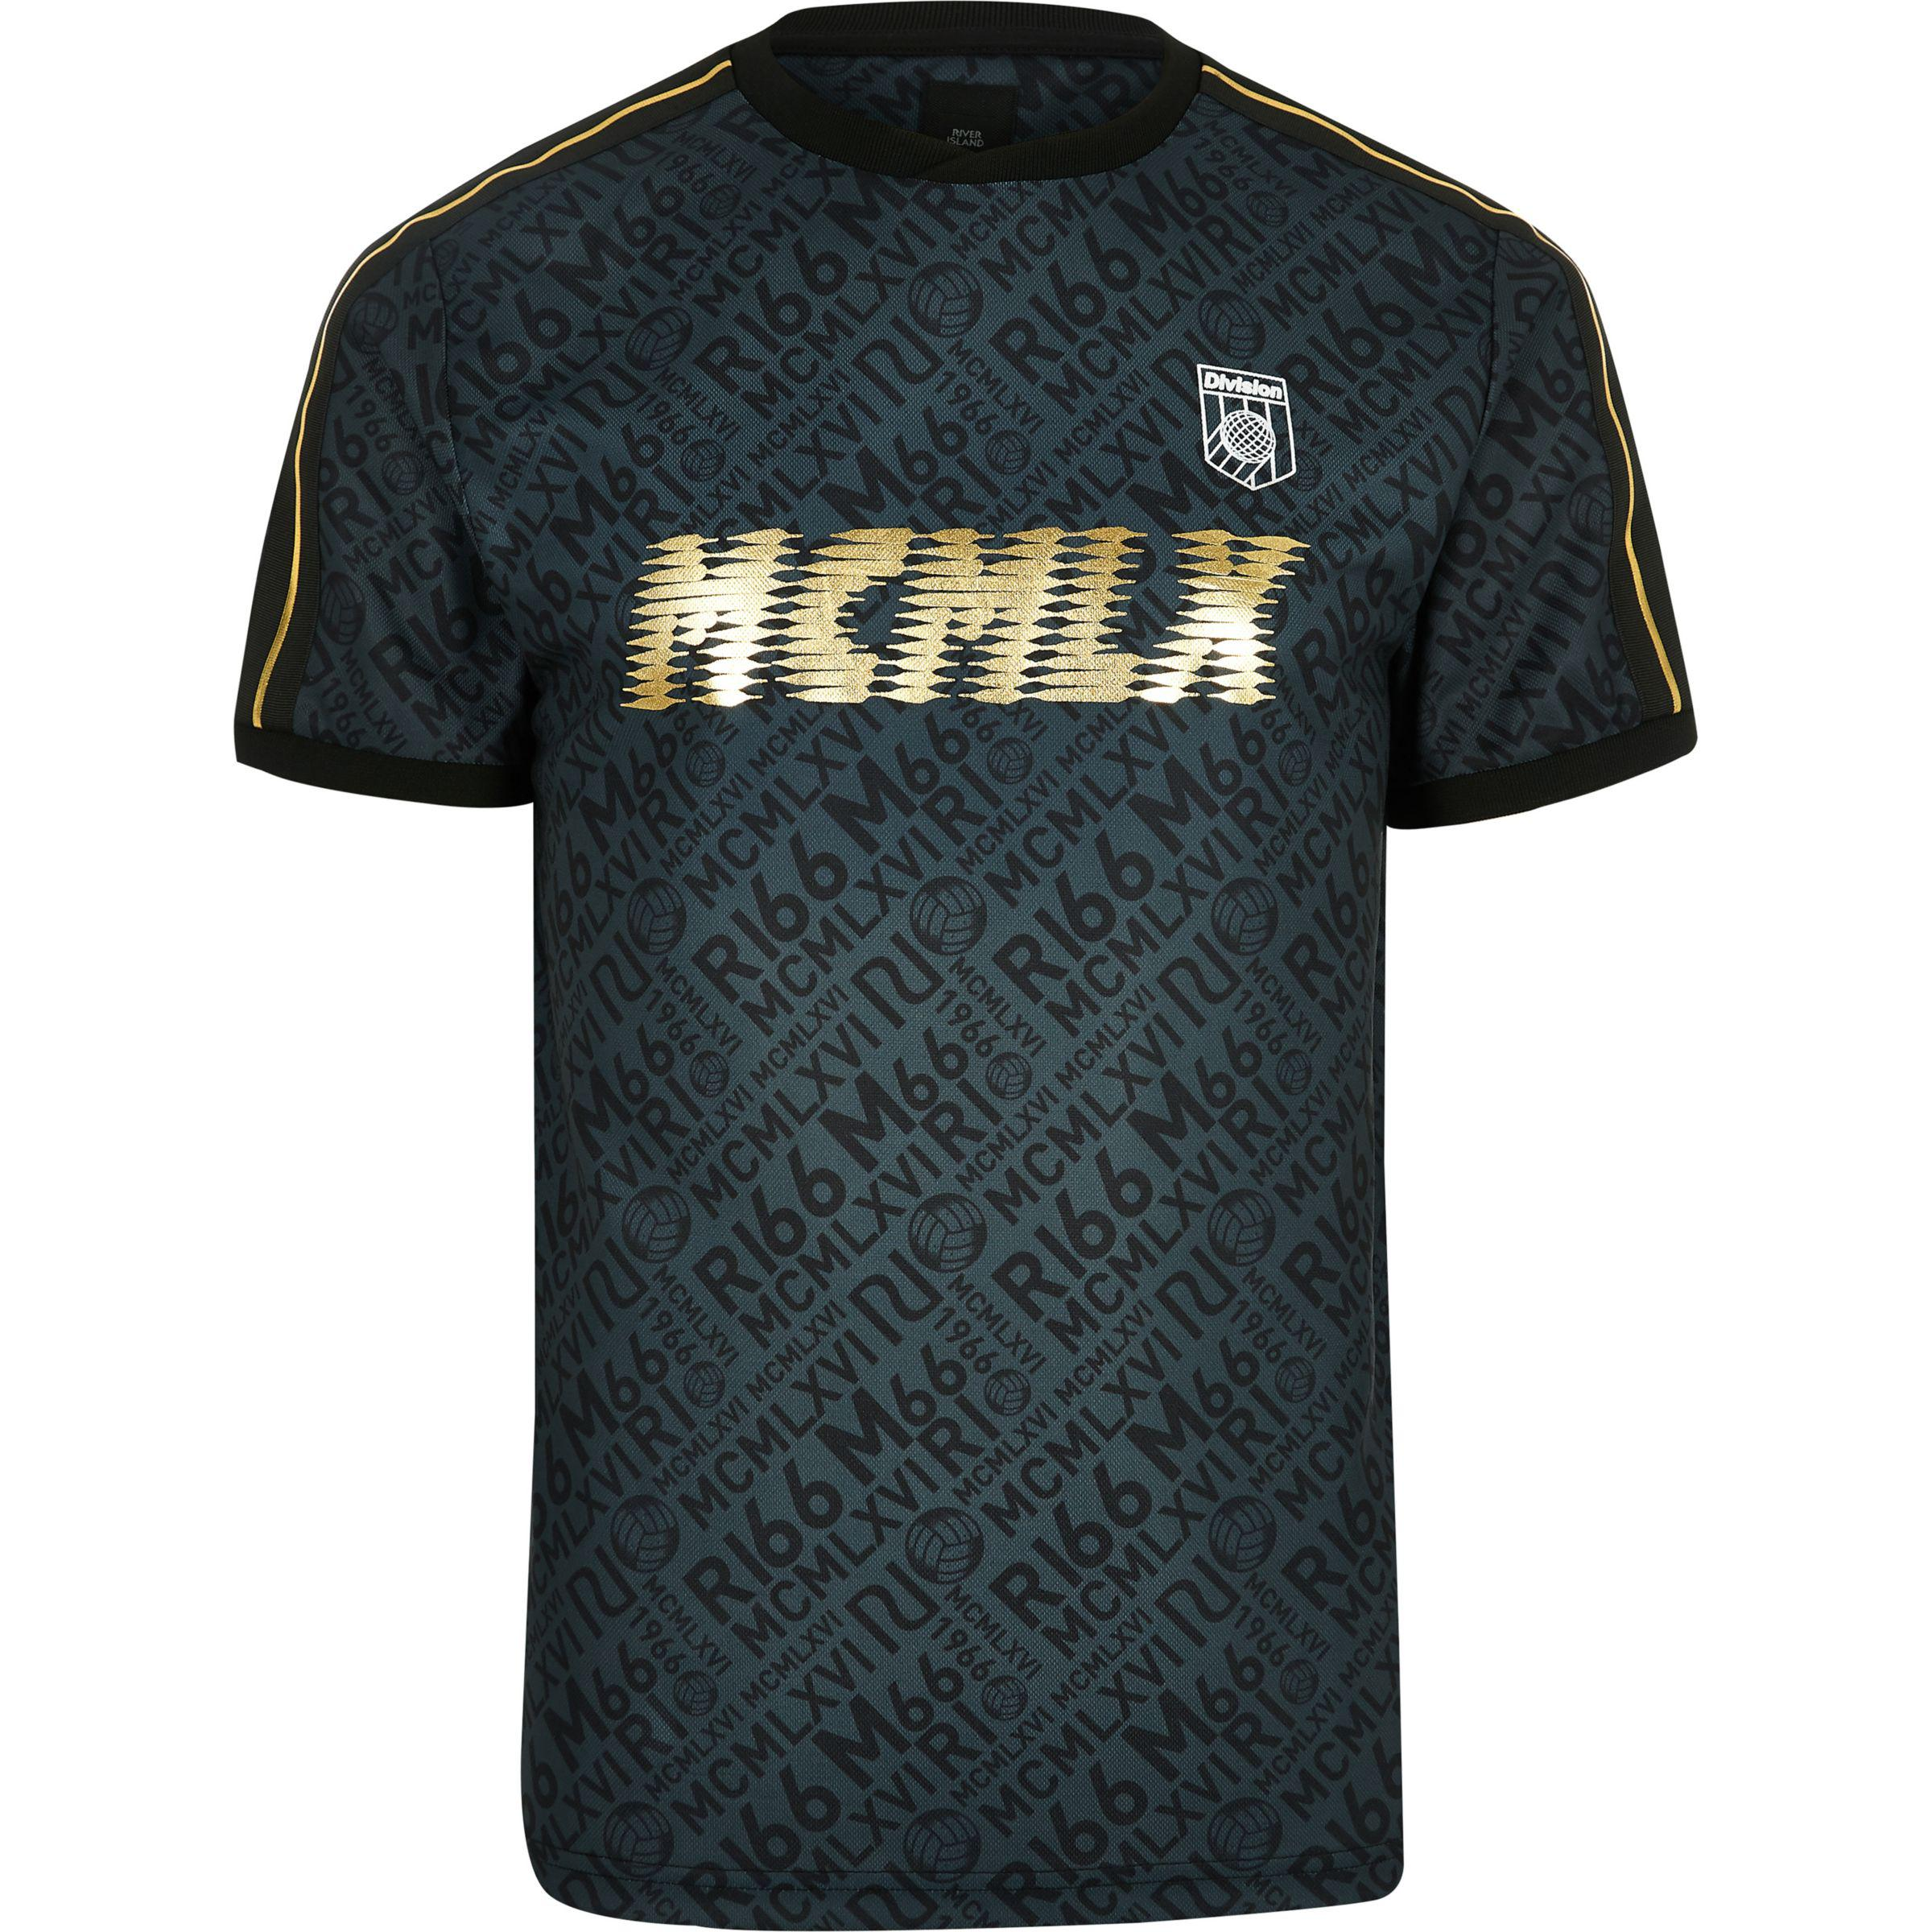 Mens Black MCMLX football style tape T-shirt River Island Free Shipping Classic Free Shipping Manchester Great Sale doNYvmG3ni